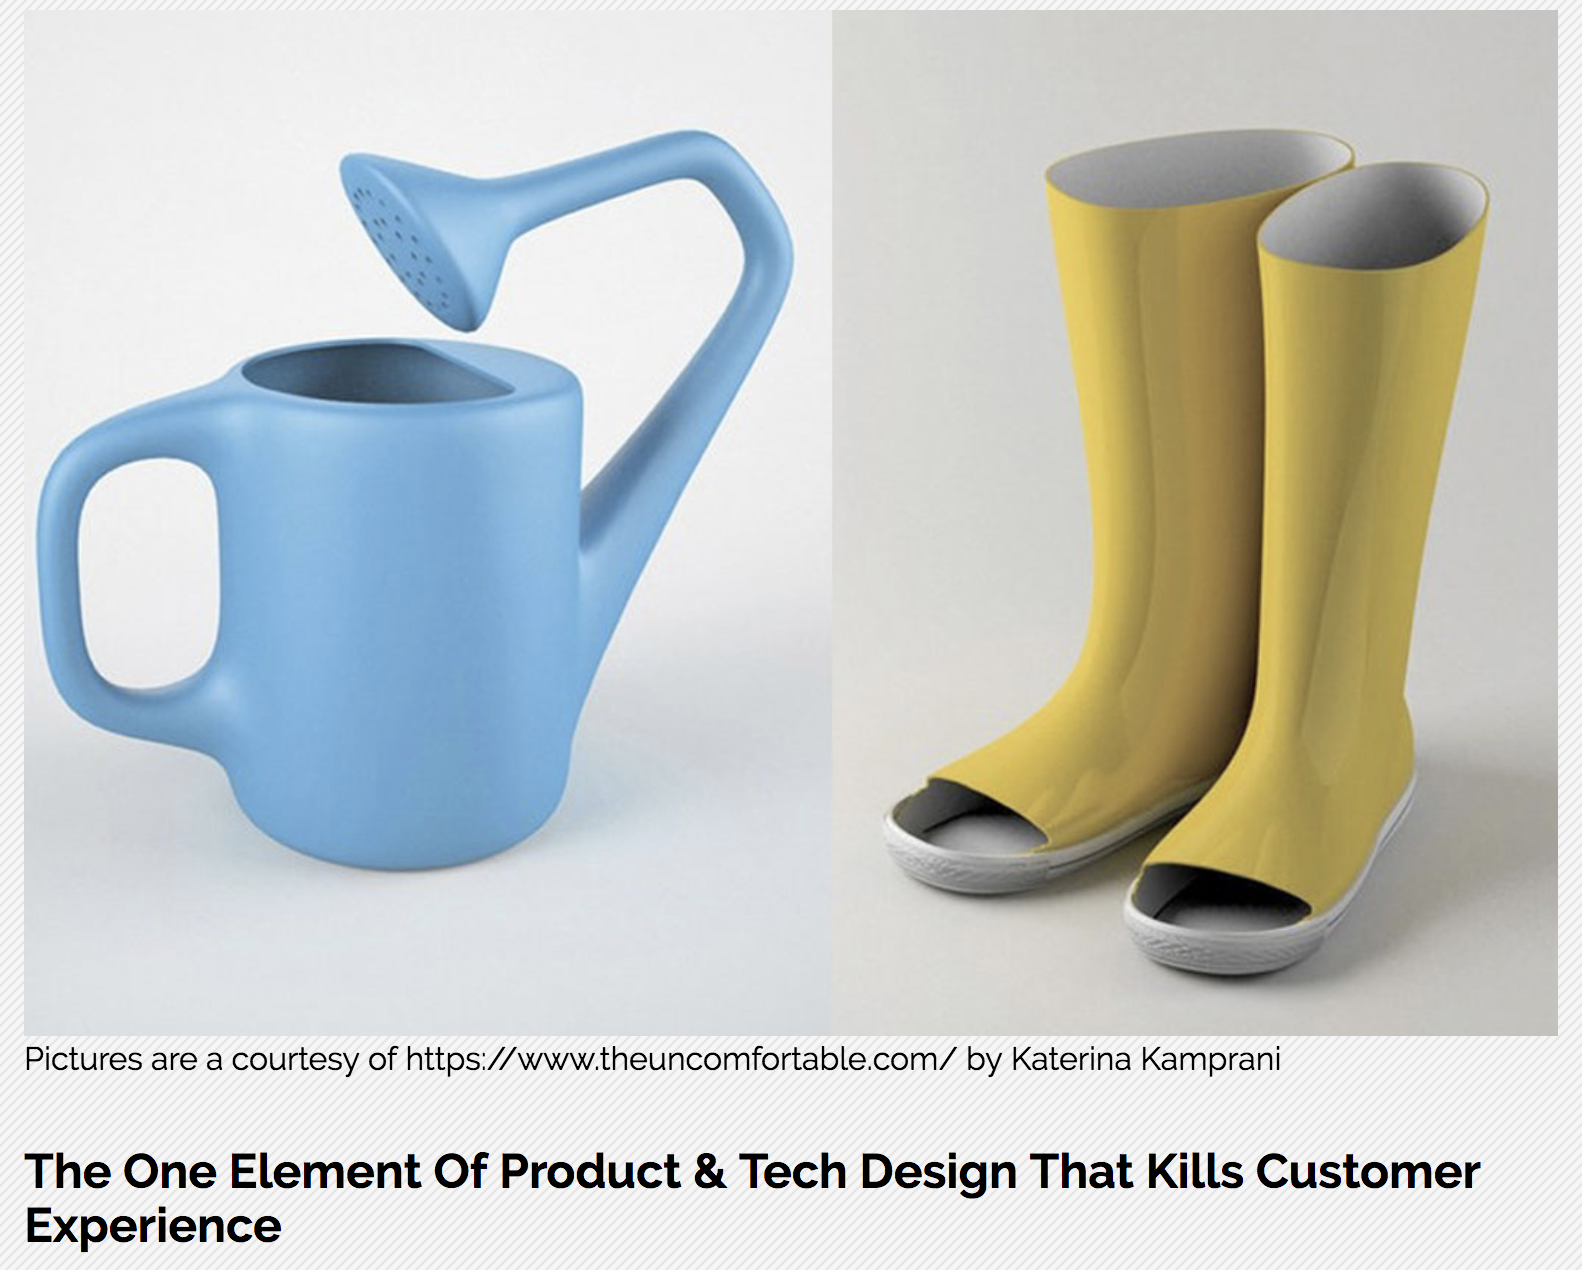 The one element of product & tech design that kills customer experience